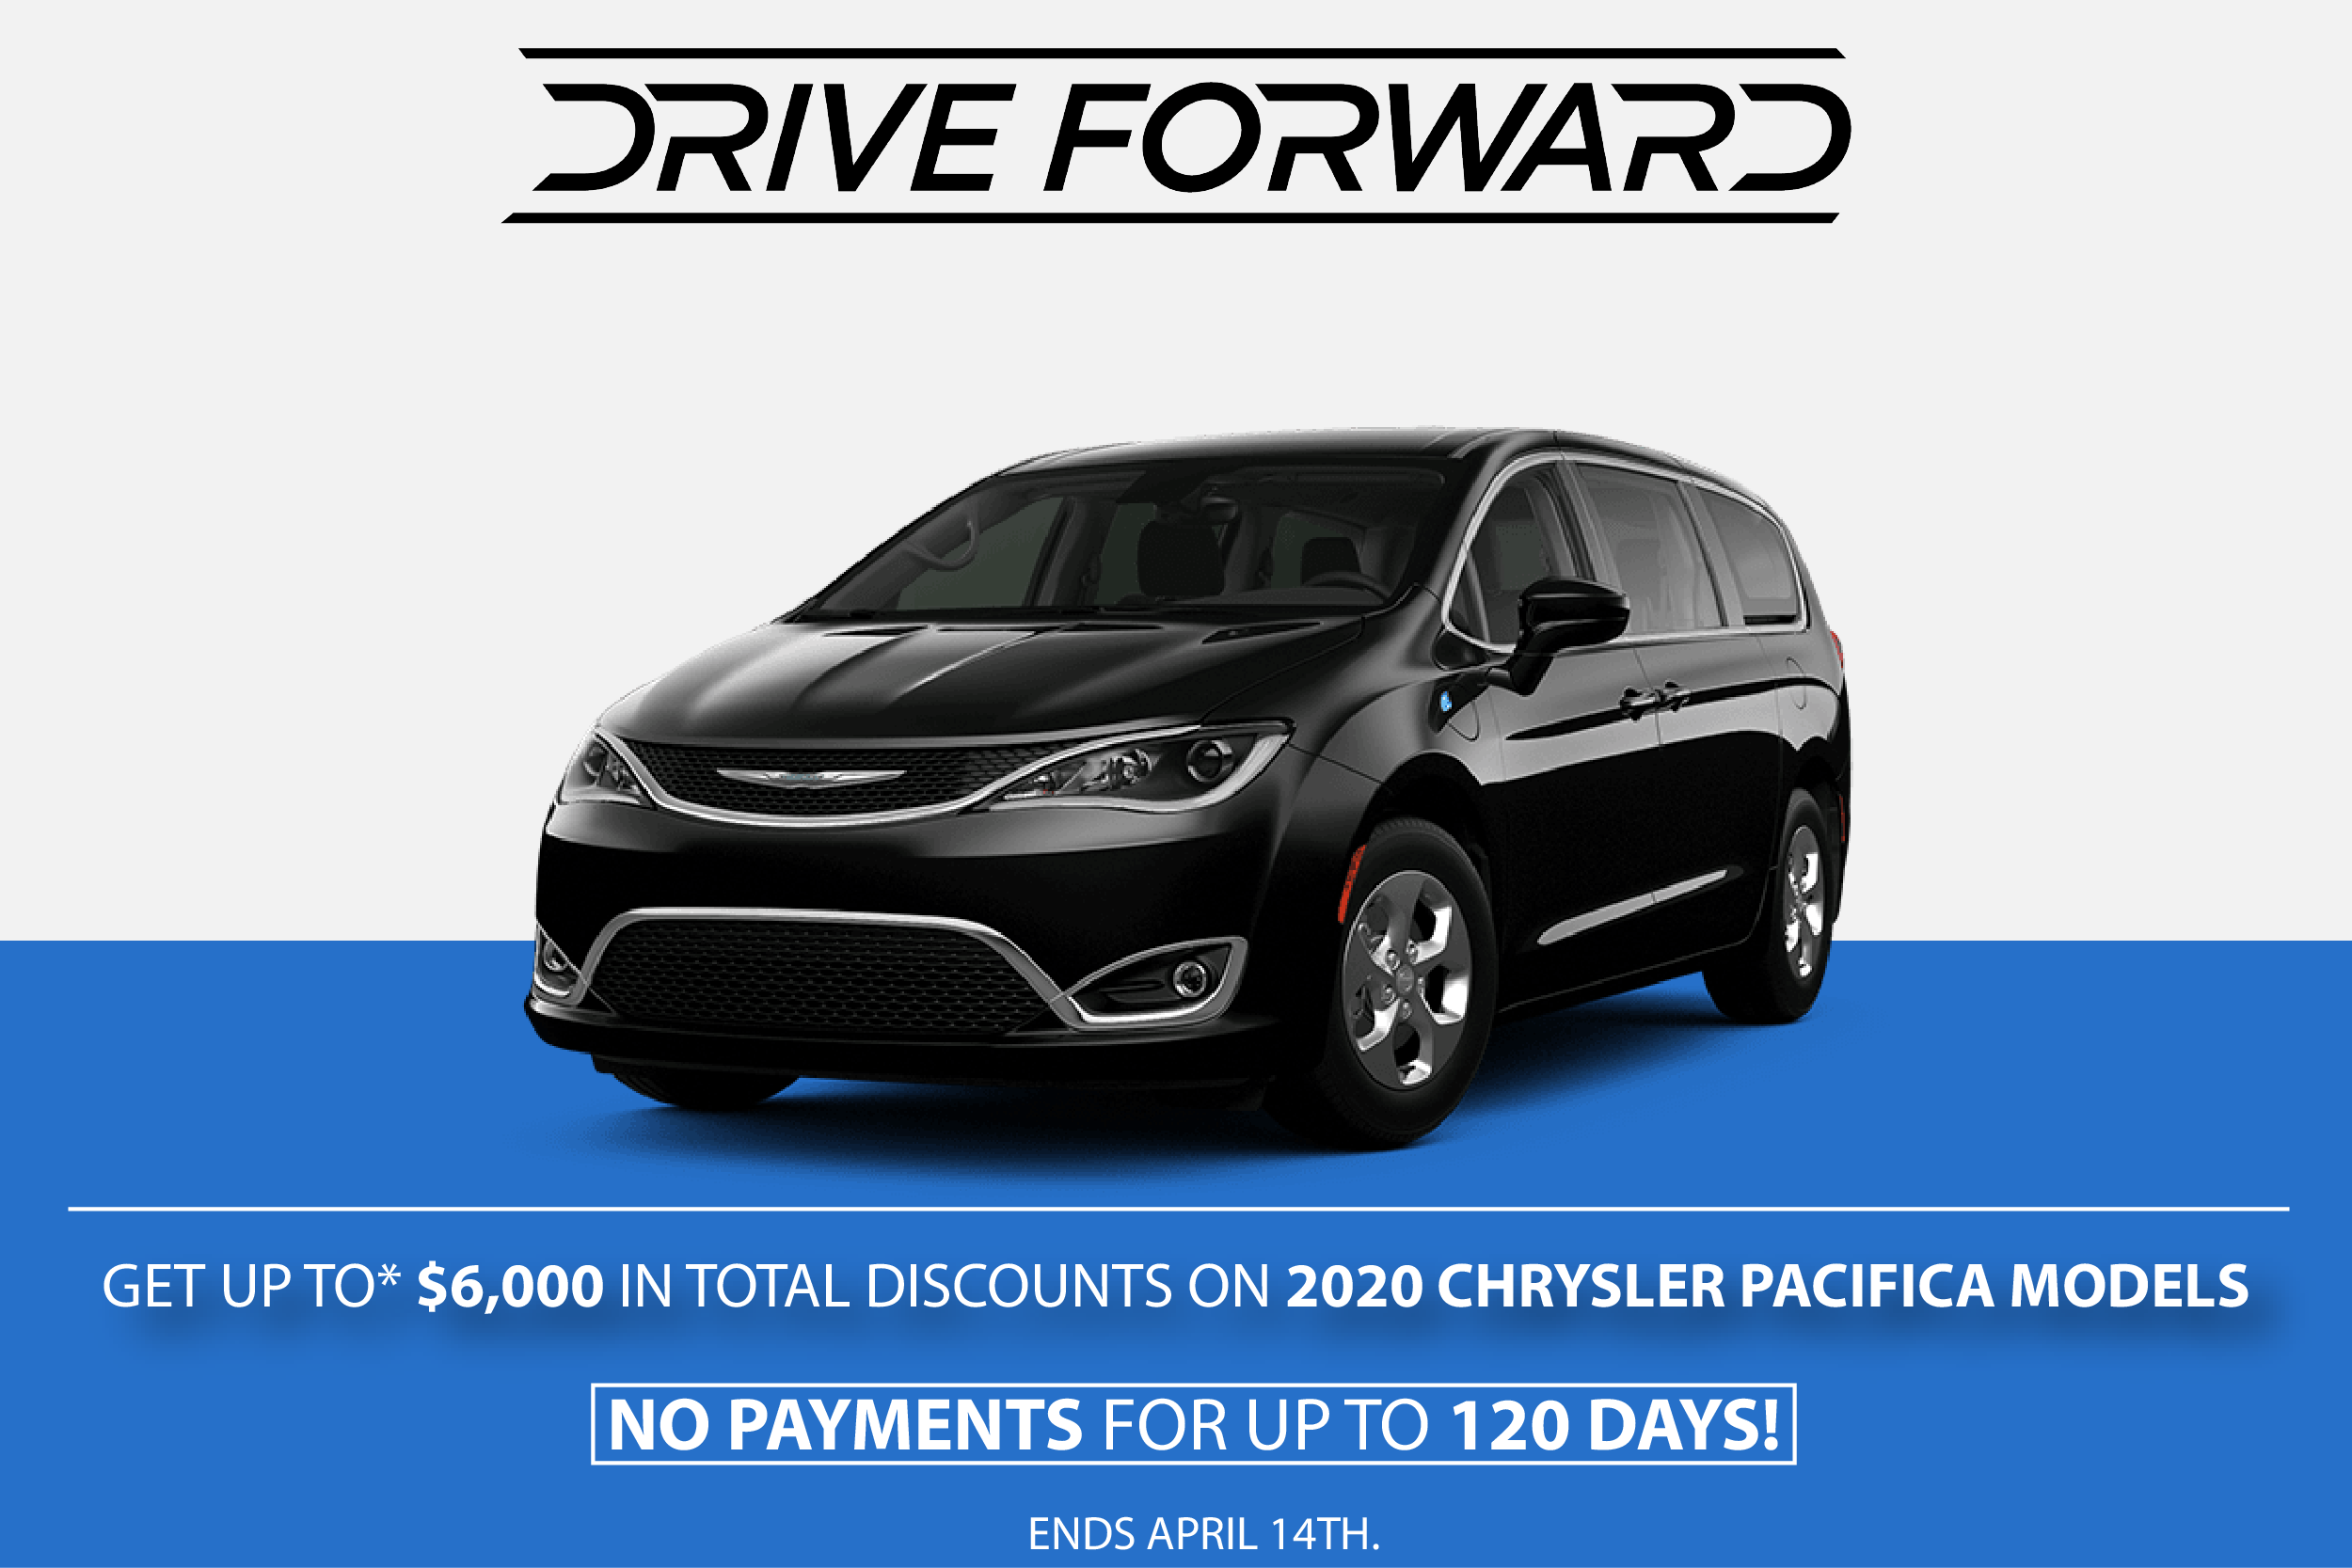 Drive Forward – Chrysler Pacifica